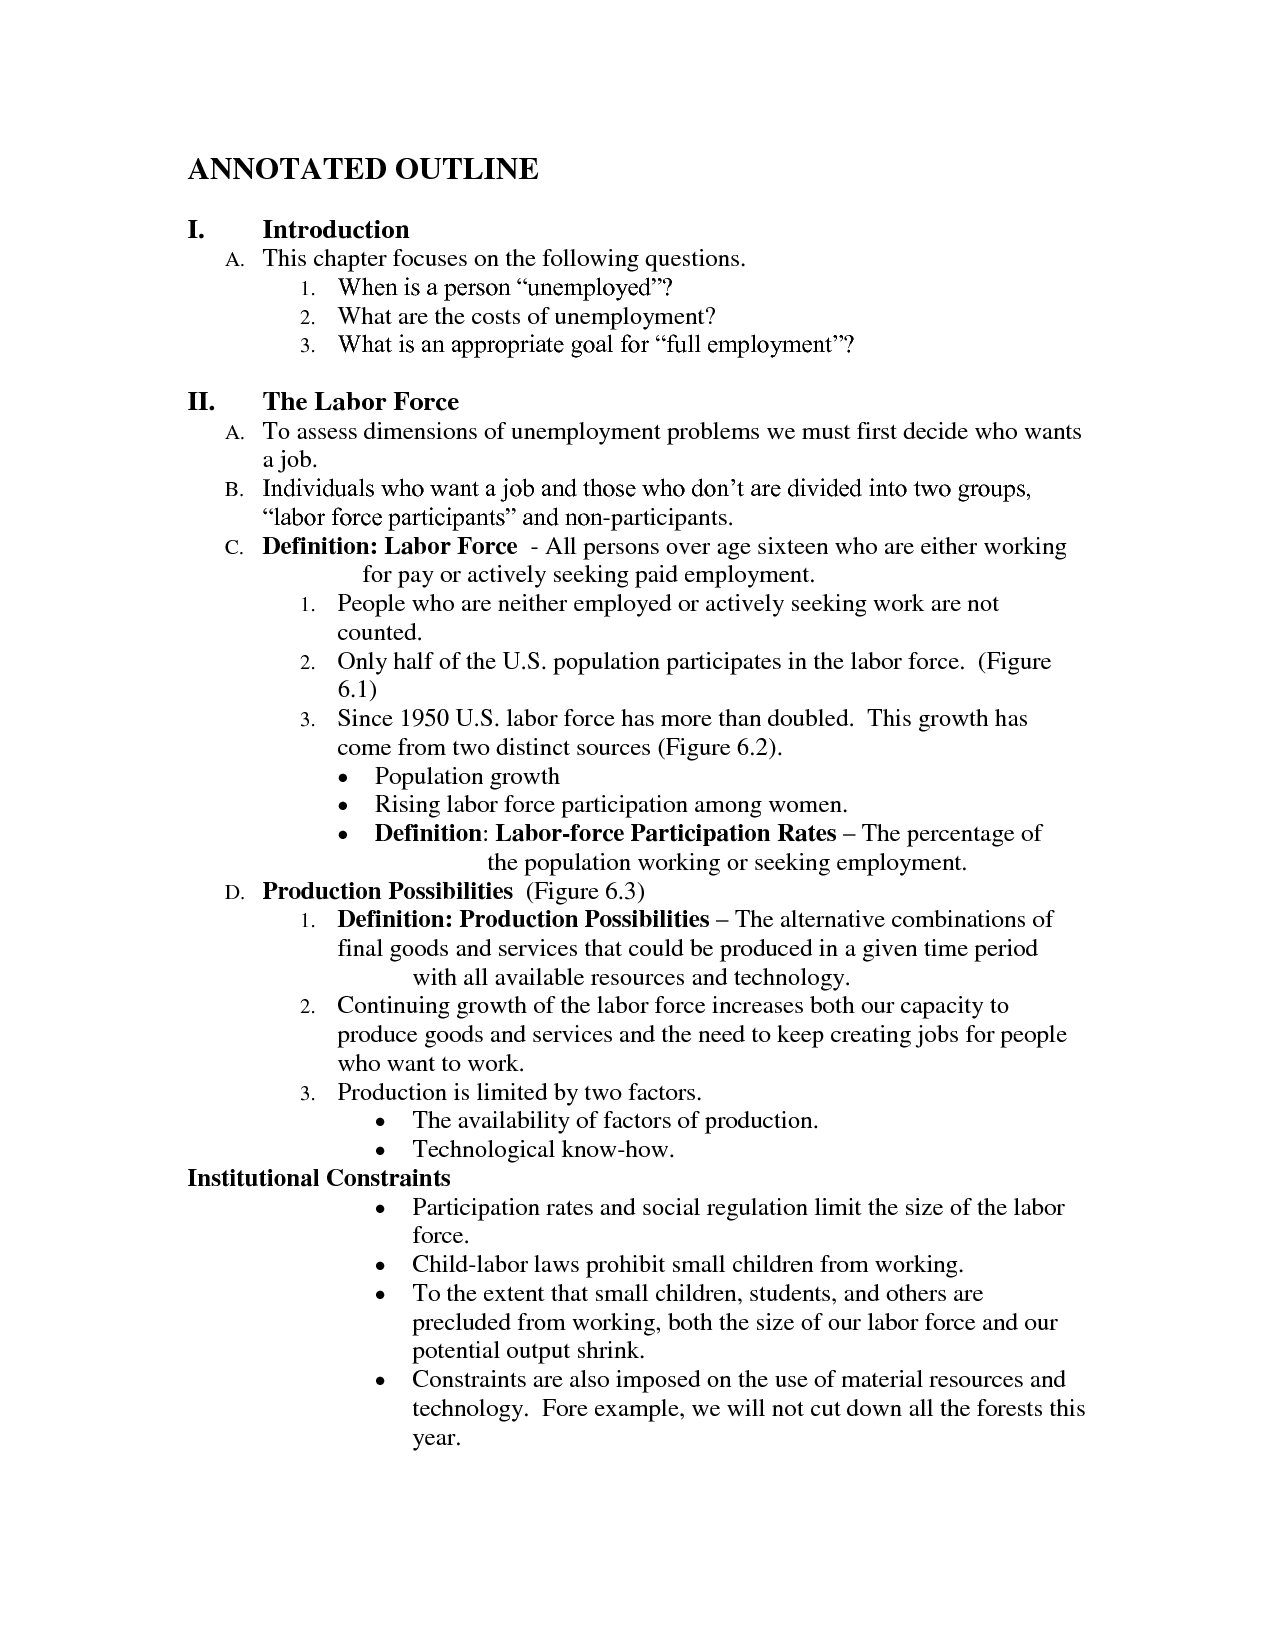 011 How To Write An Outline For Research Paper In Apa Format Annotated 82075 Stupendous A Full